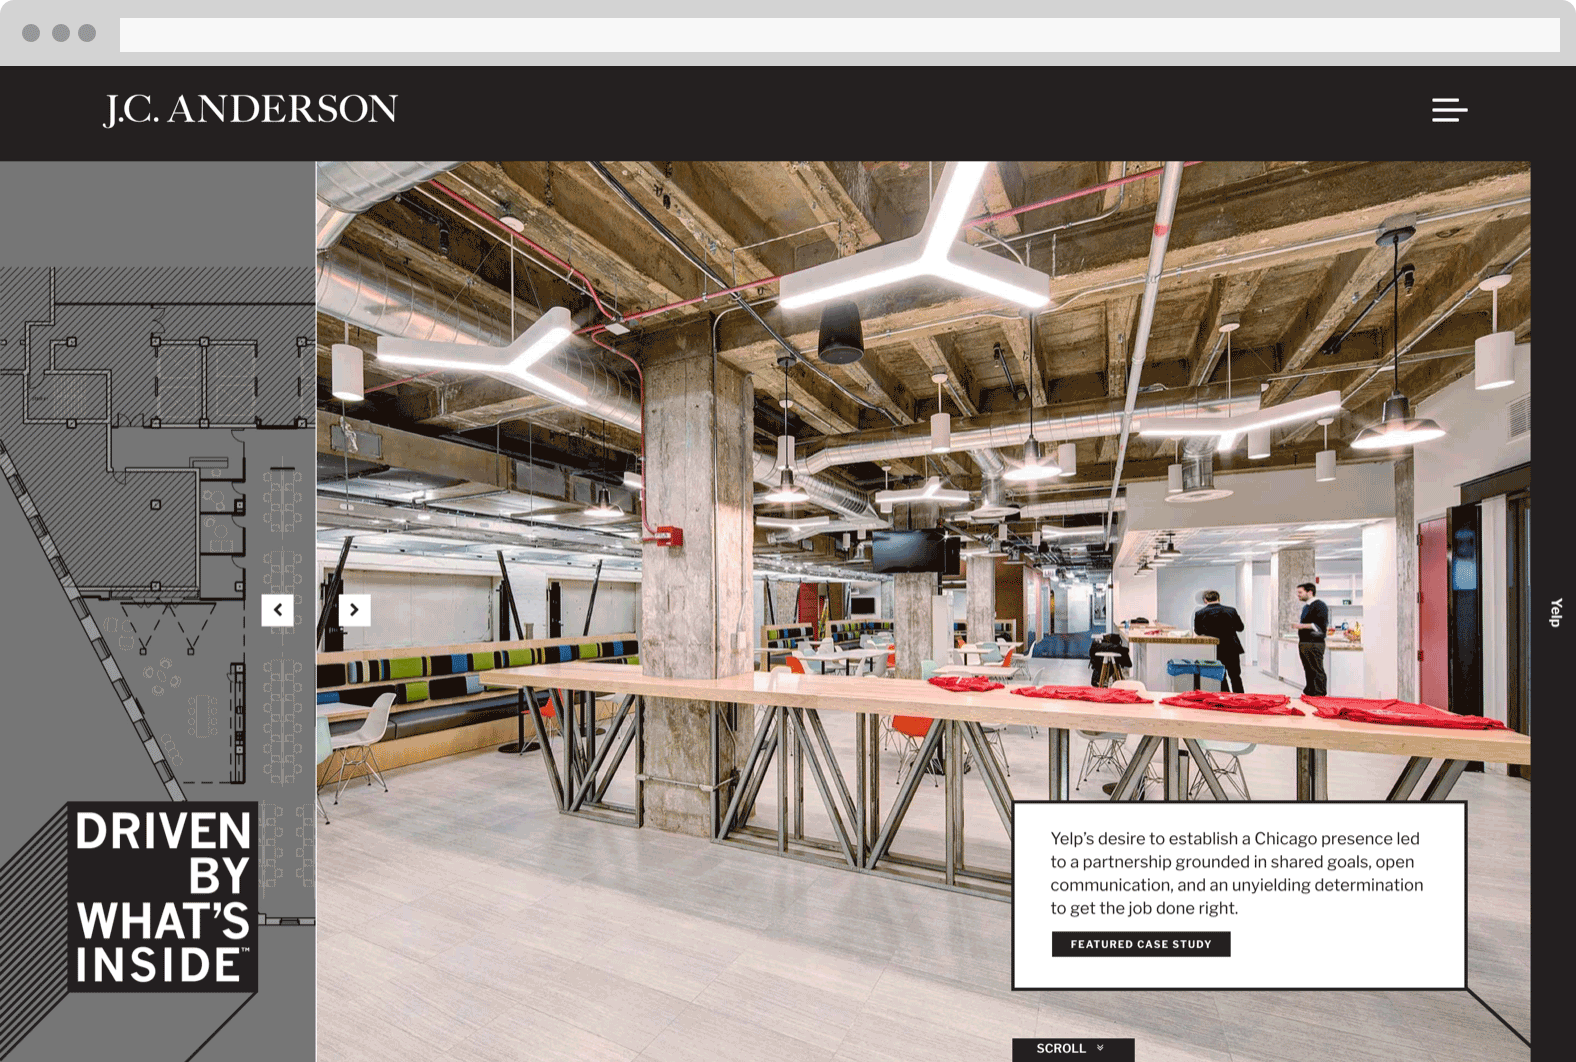 J.C. Anderson website by cultivate